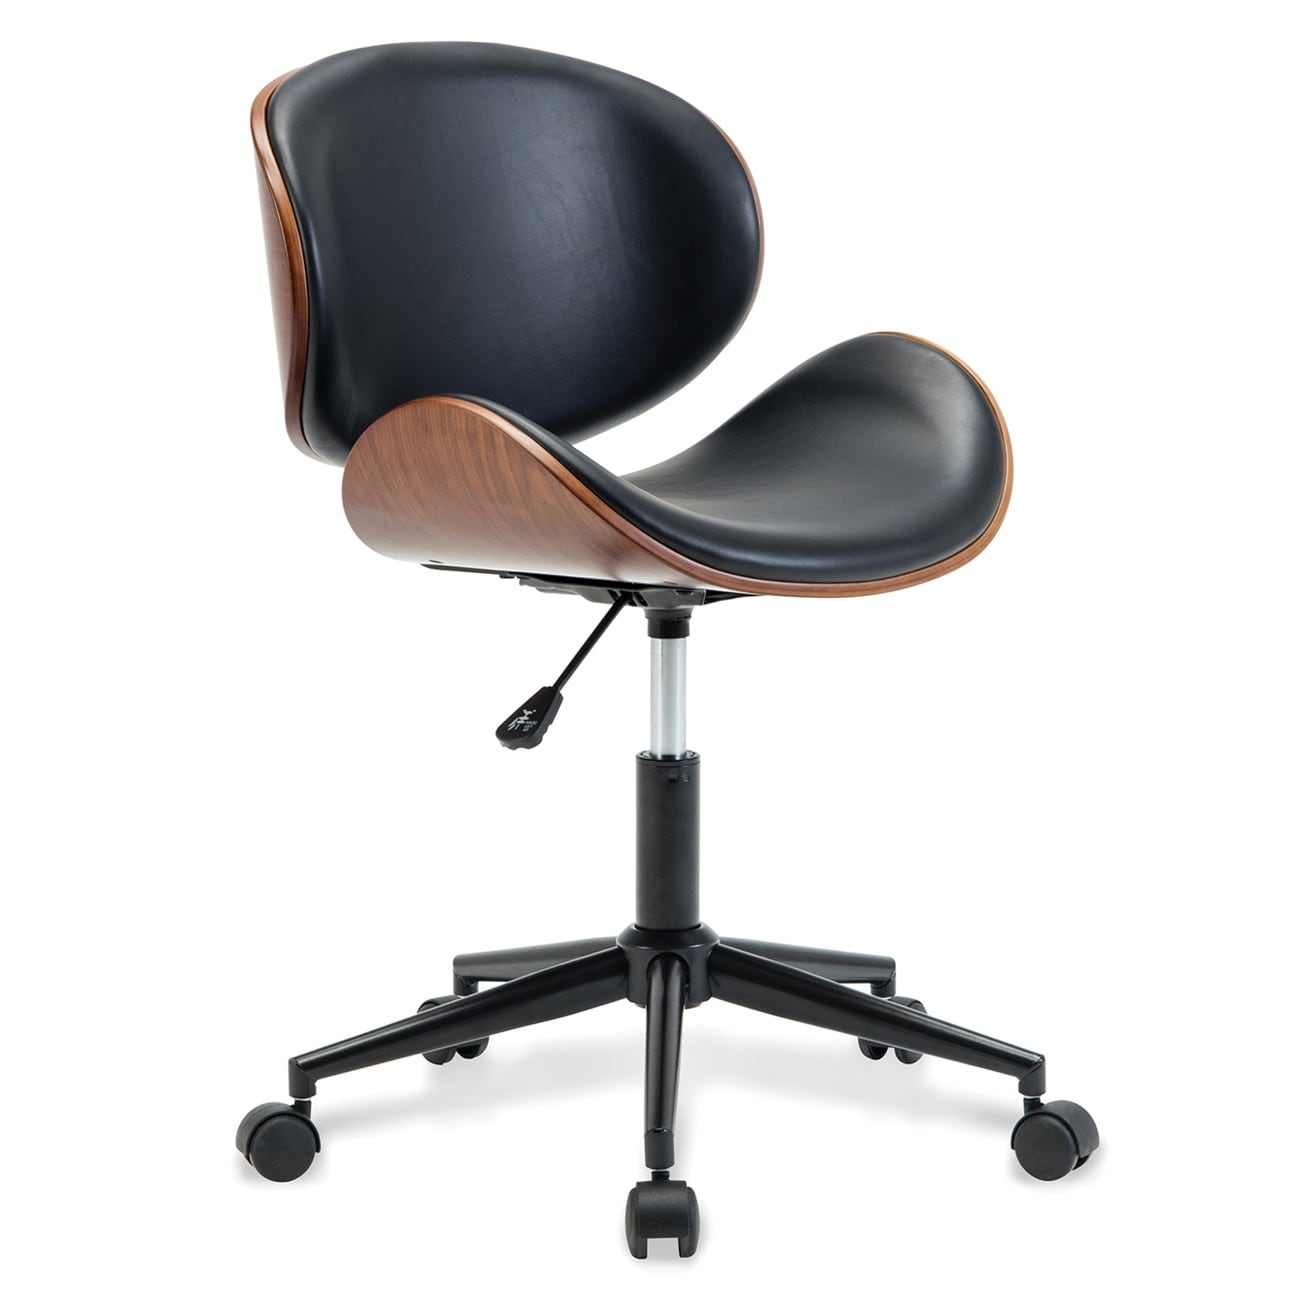 Belleze Modern Leather Upholstered Swivel Office Desk Chair W Adjule Height